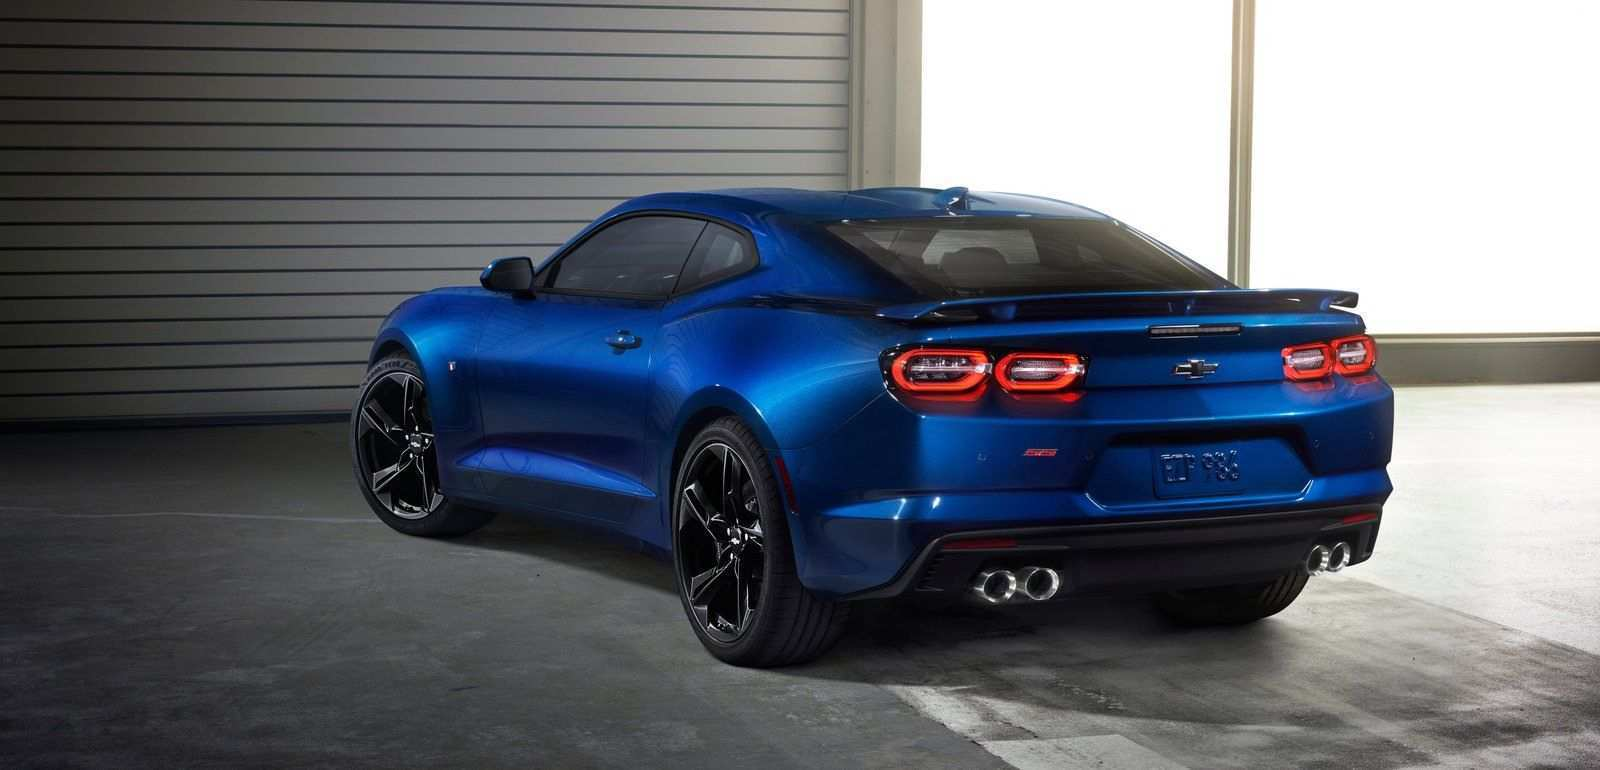 21 All New 2020 Chevy Camaro Competition Arrival Images